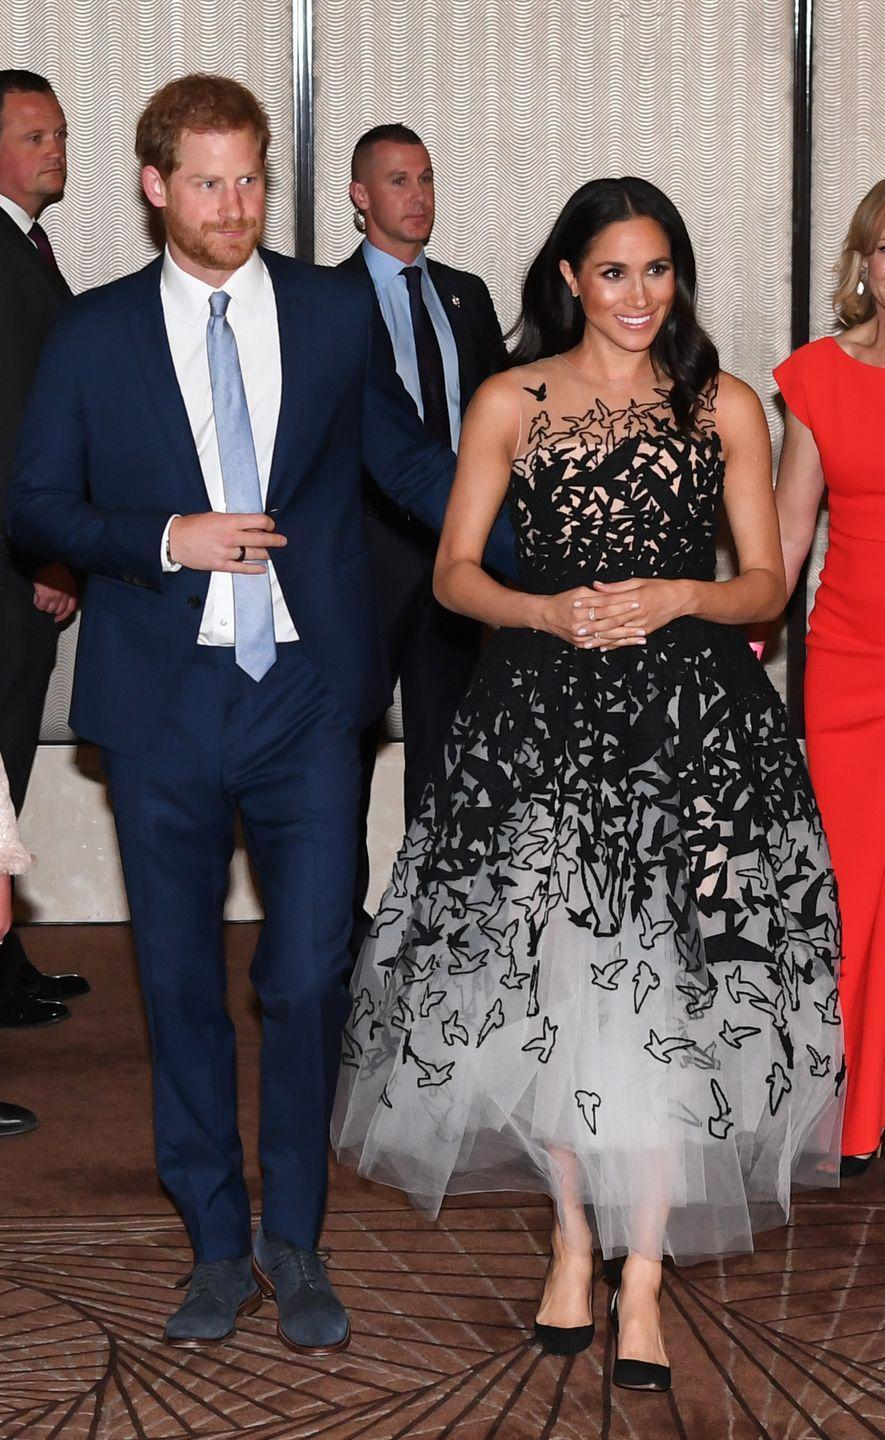 <p>The Duchess of Sussex wowed well-wishers when she stepped out for the Australian Geographic Society Awards in Sydney, Australia in an elaborate Oscar de la Renta gown. The black and white dress featured an illusion neckline, an abstract print, and a full tulle skirt. </p>